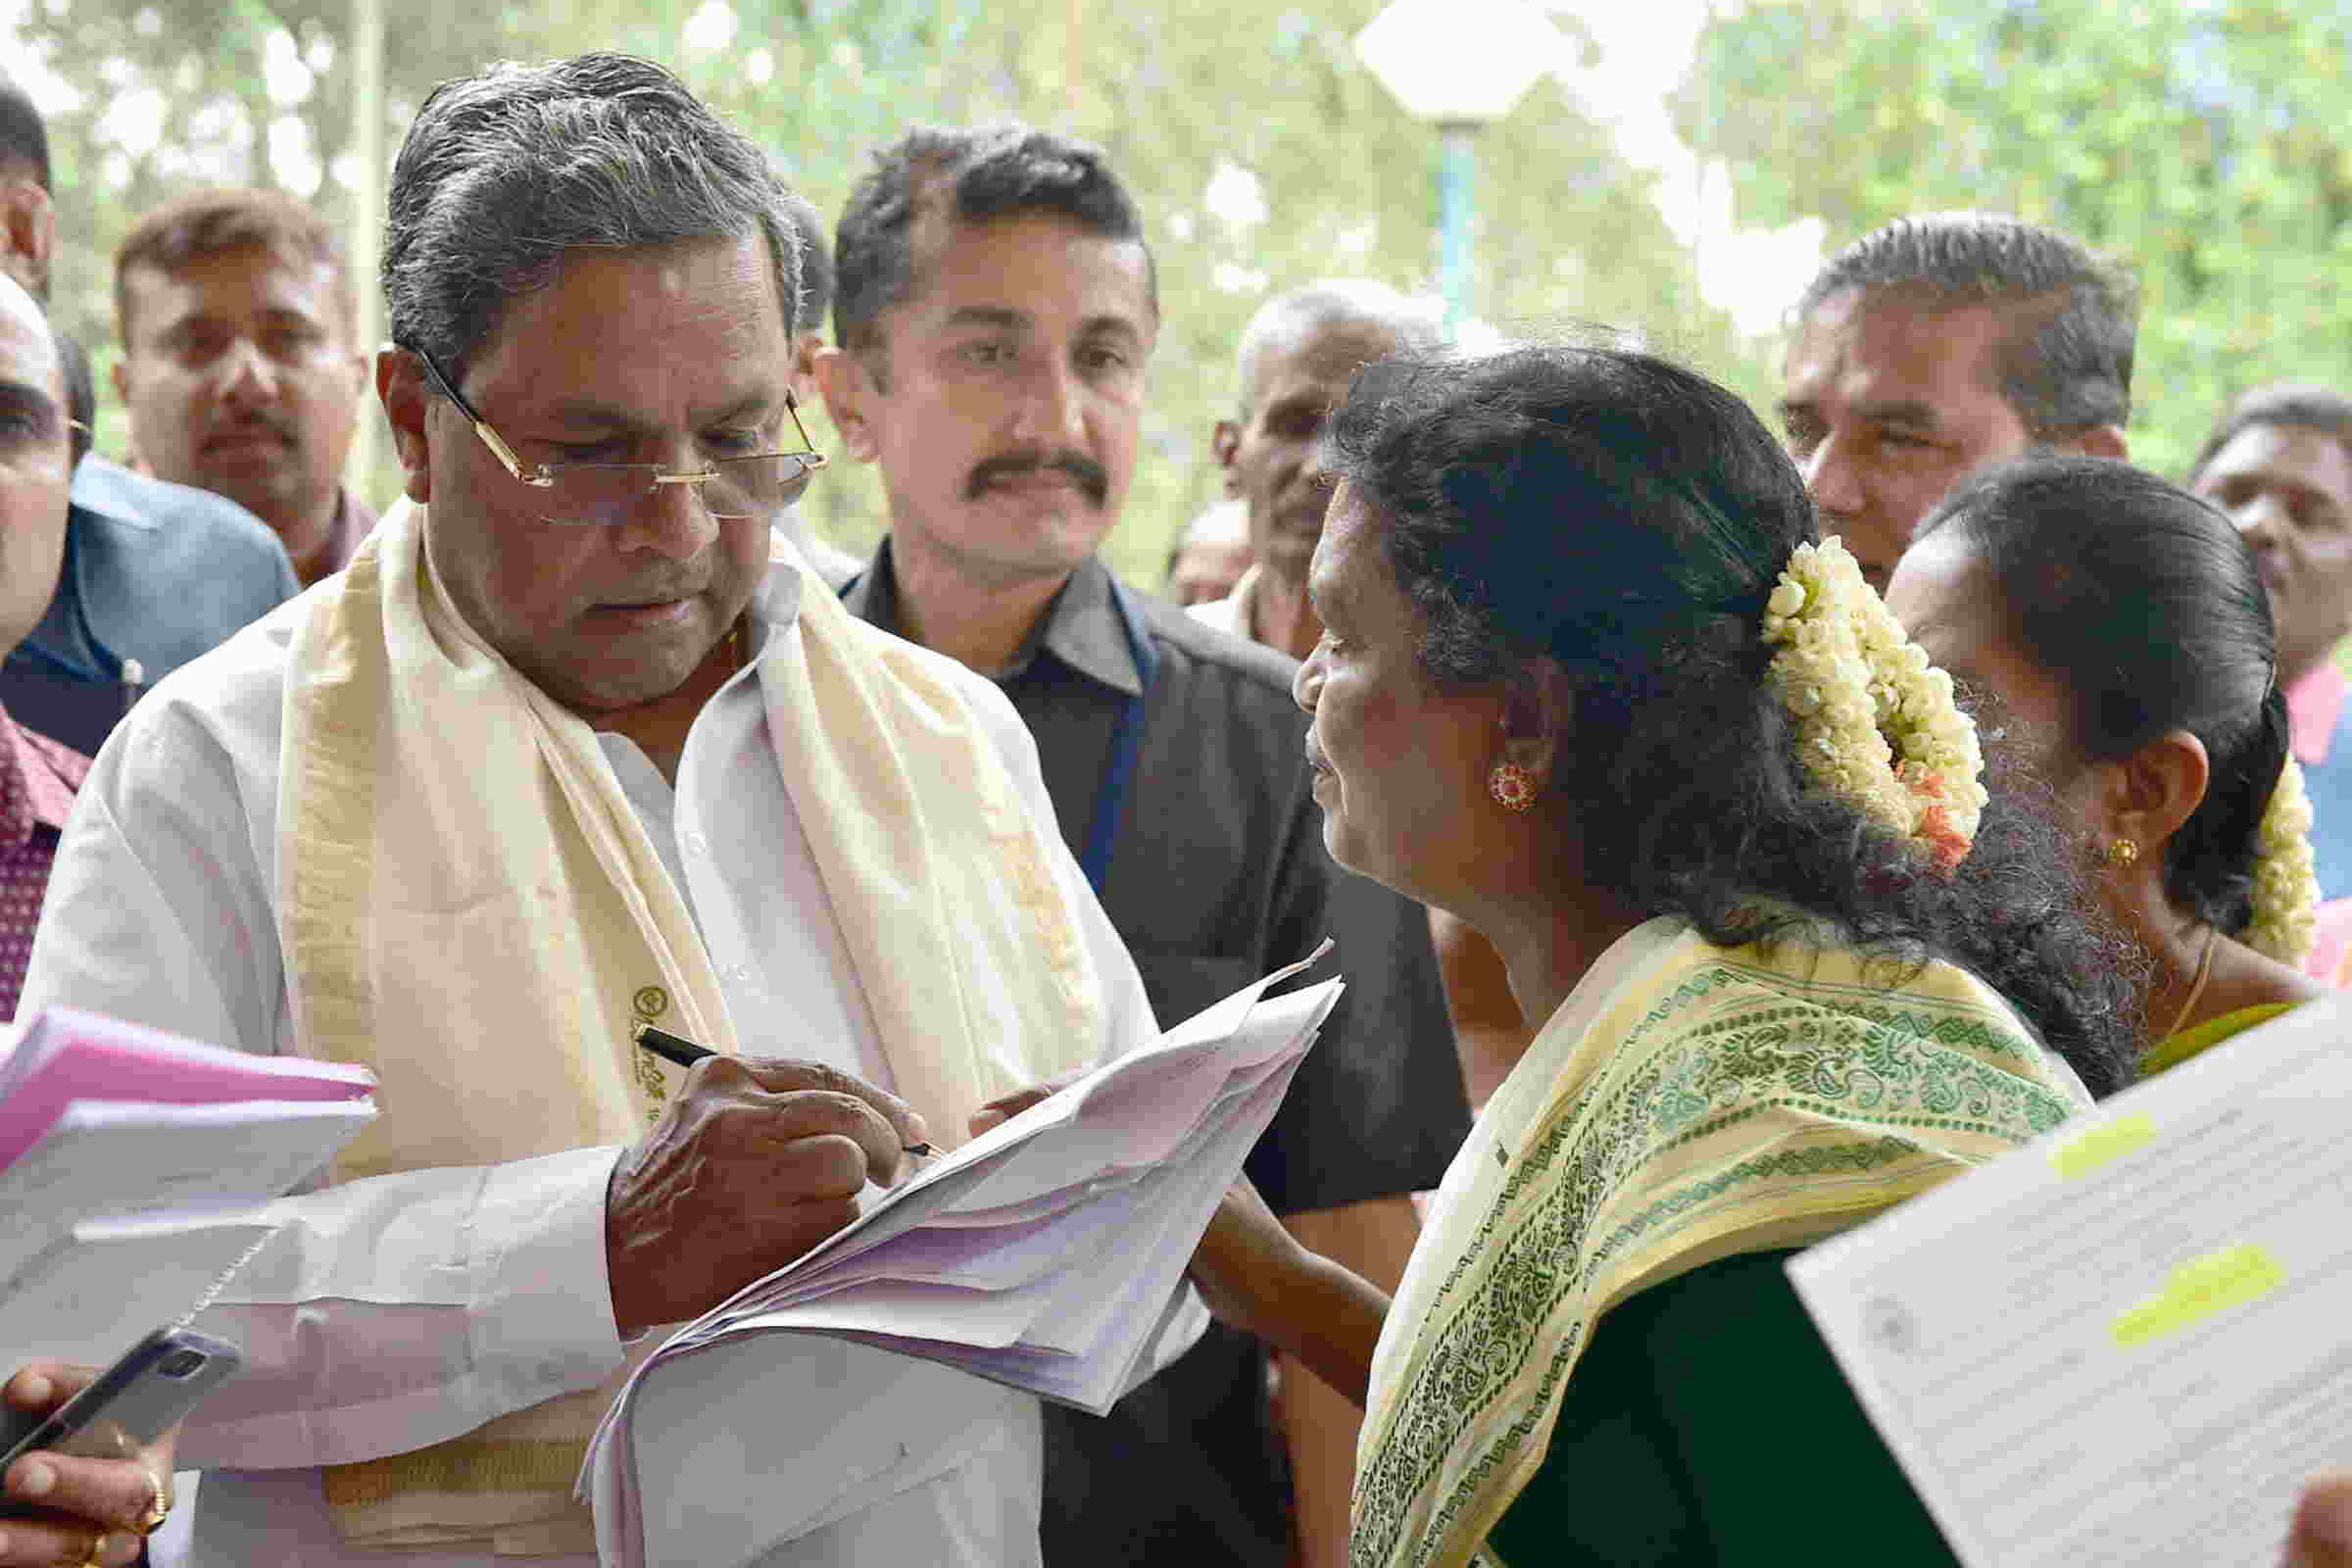 EAR TO THE GROUND: Karnataka Chief Minister Siddaramaiah hears public grievances at Cauvery in Bengaluru, UNI